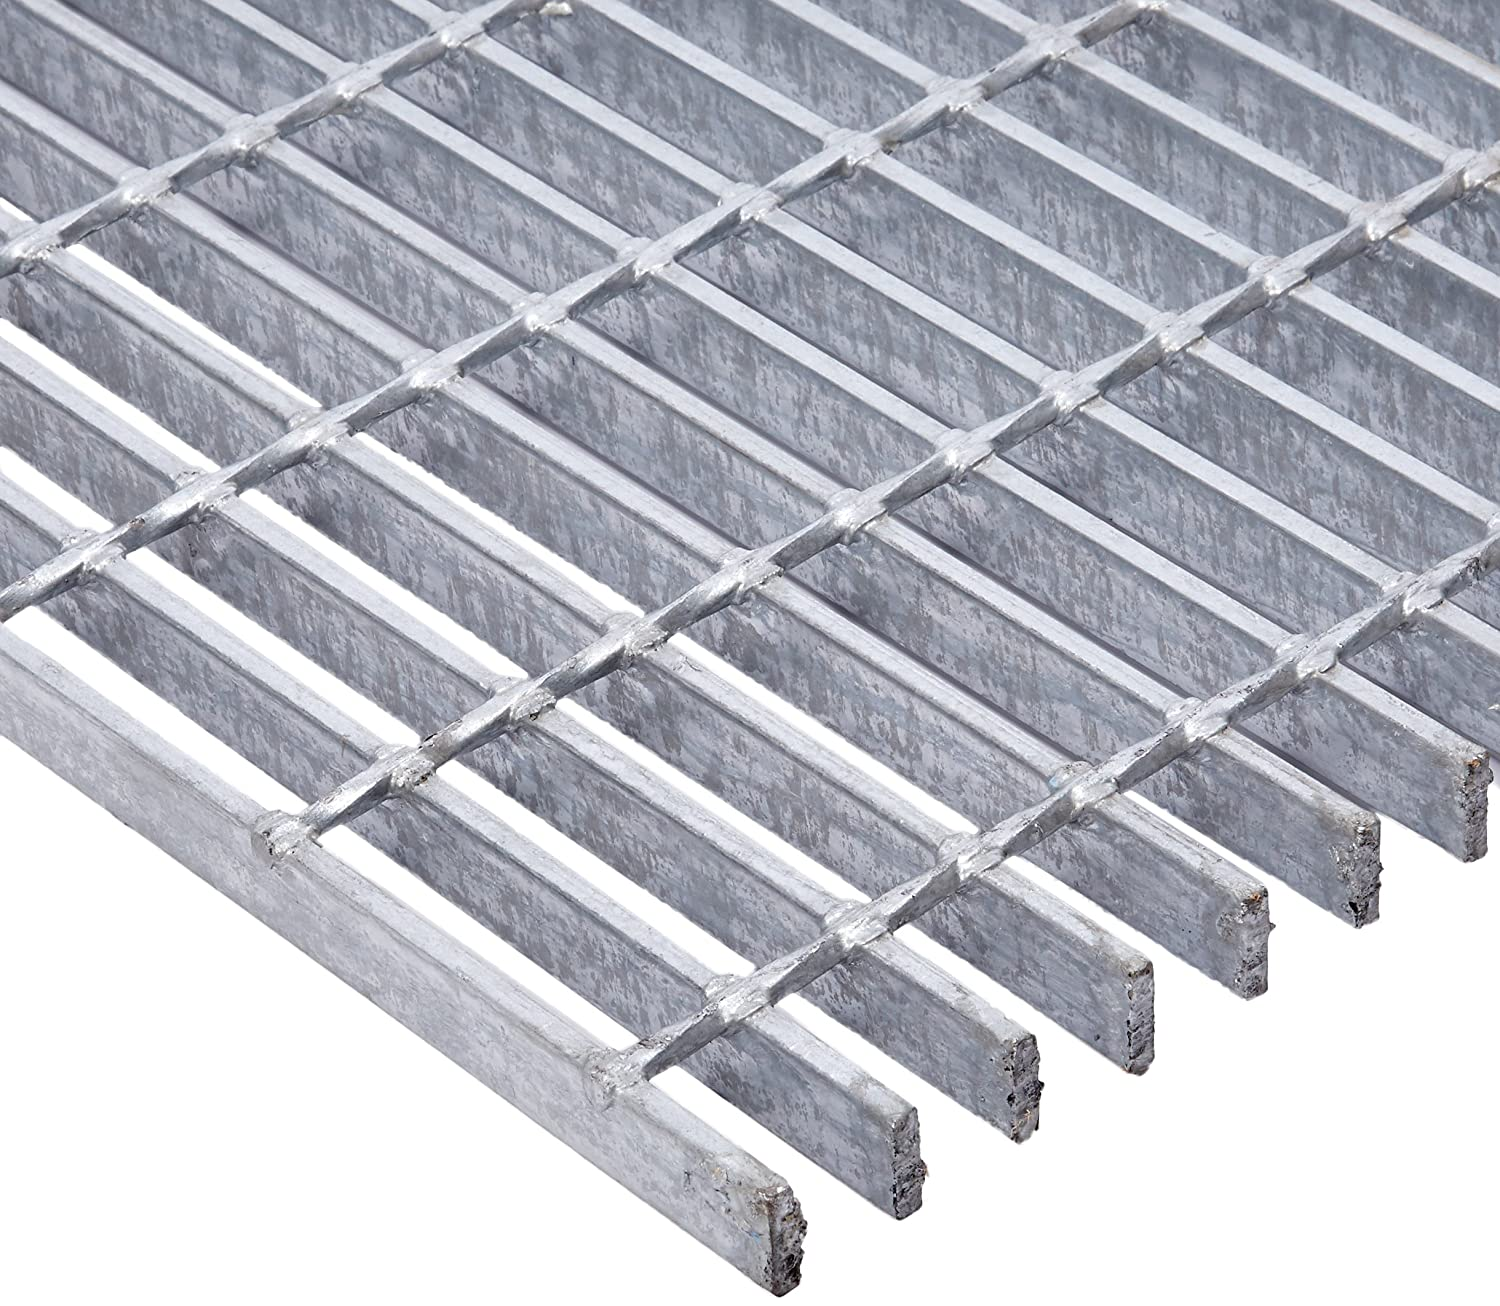 19W4 Heavy Duty Welded Carbon Steel Bar Grating with 4